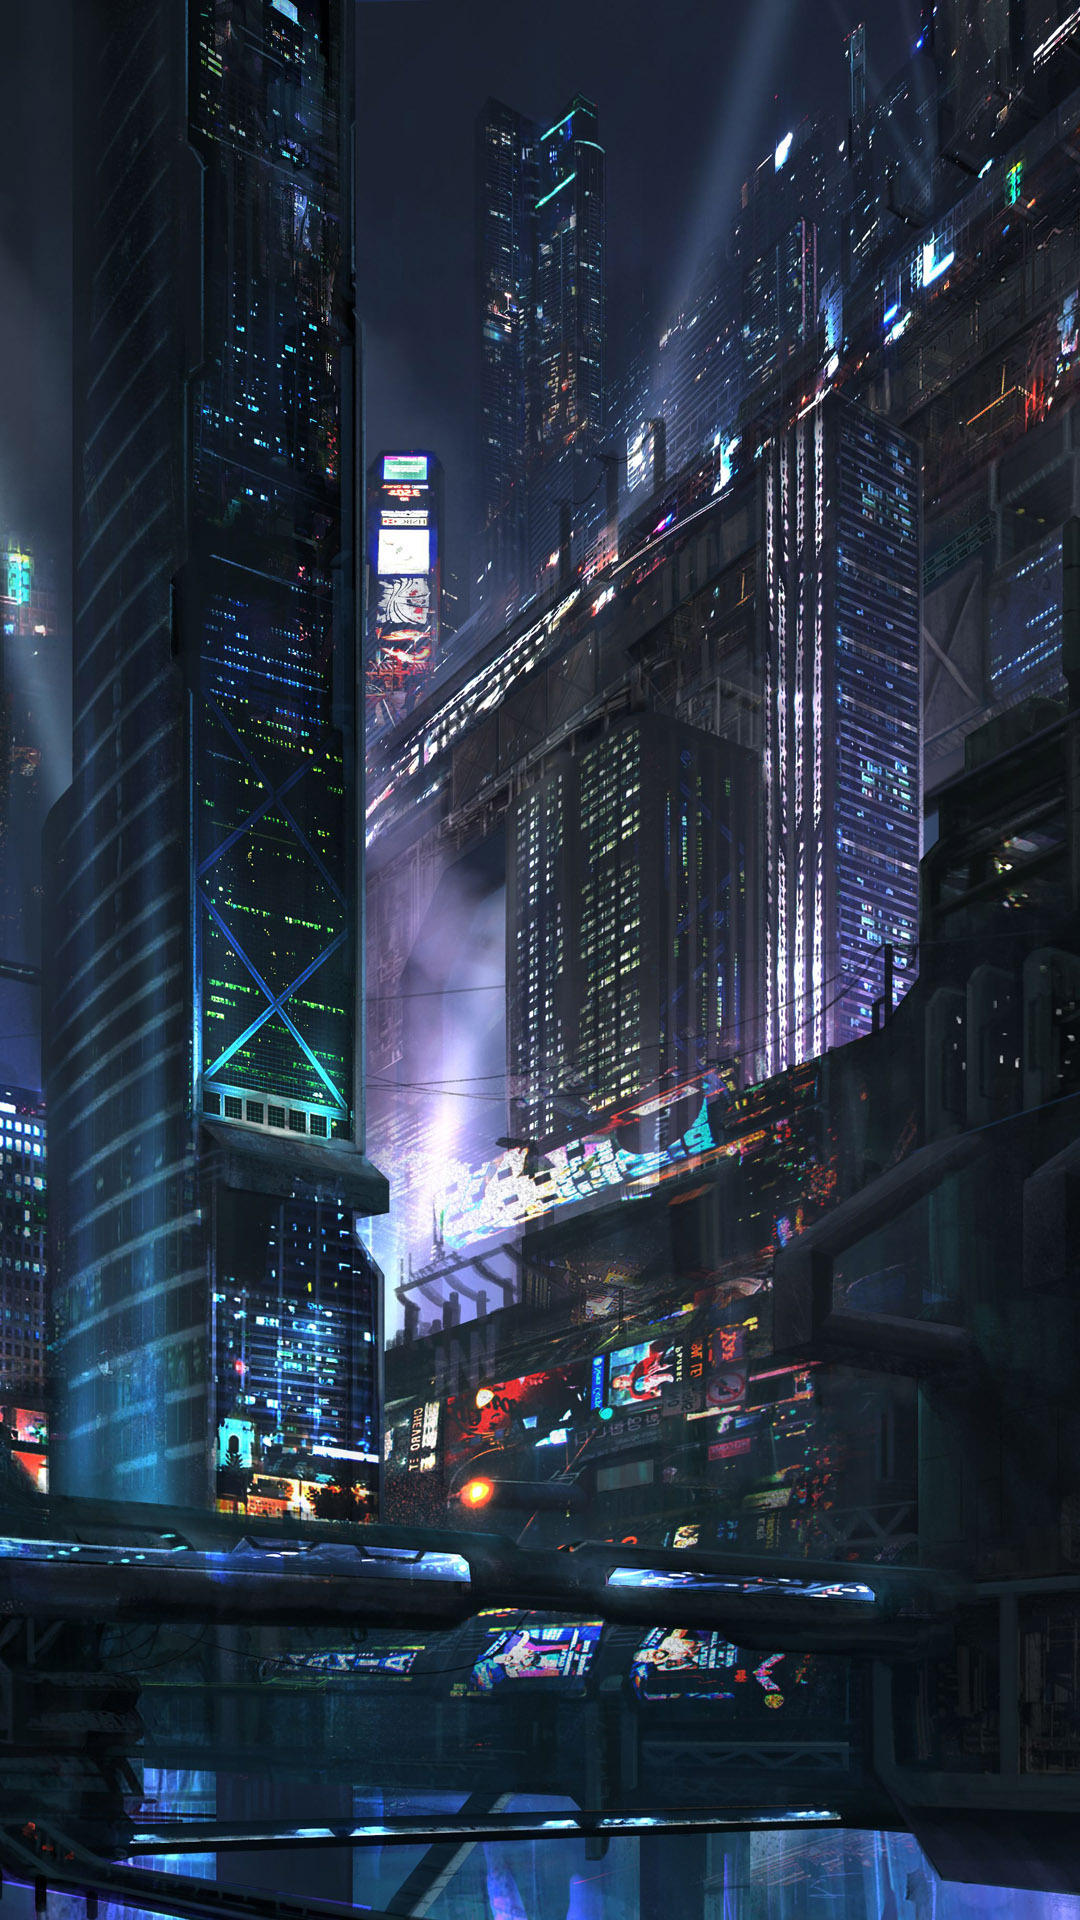 Night Wallpaper Futuristic City At Night Fantasy Mobile